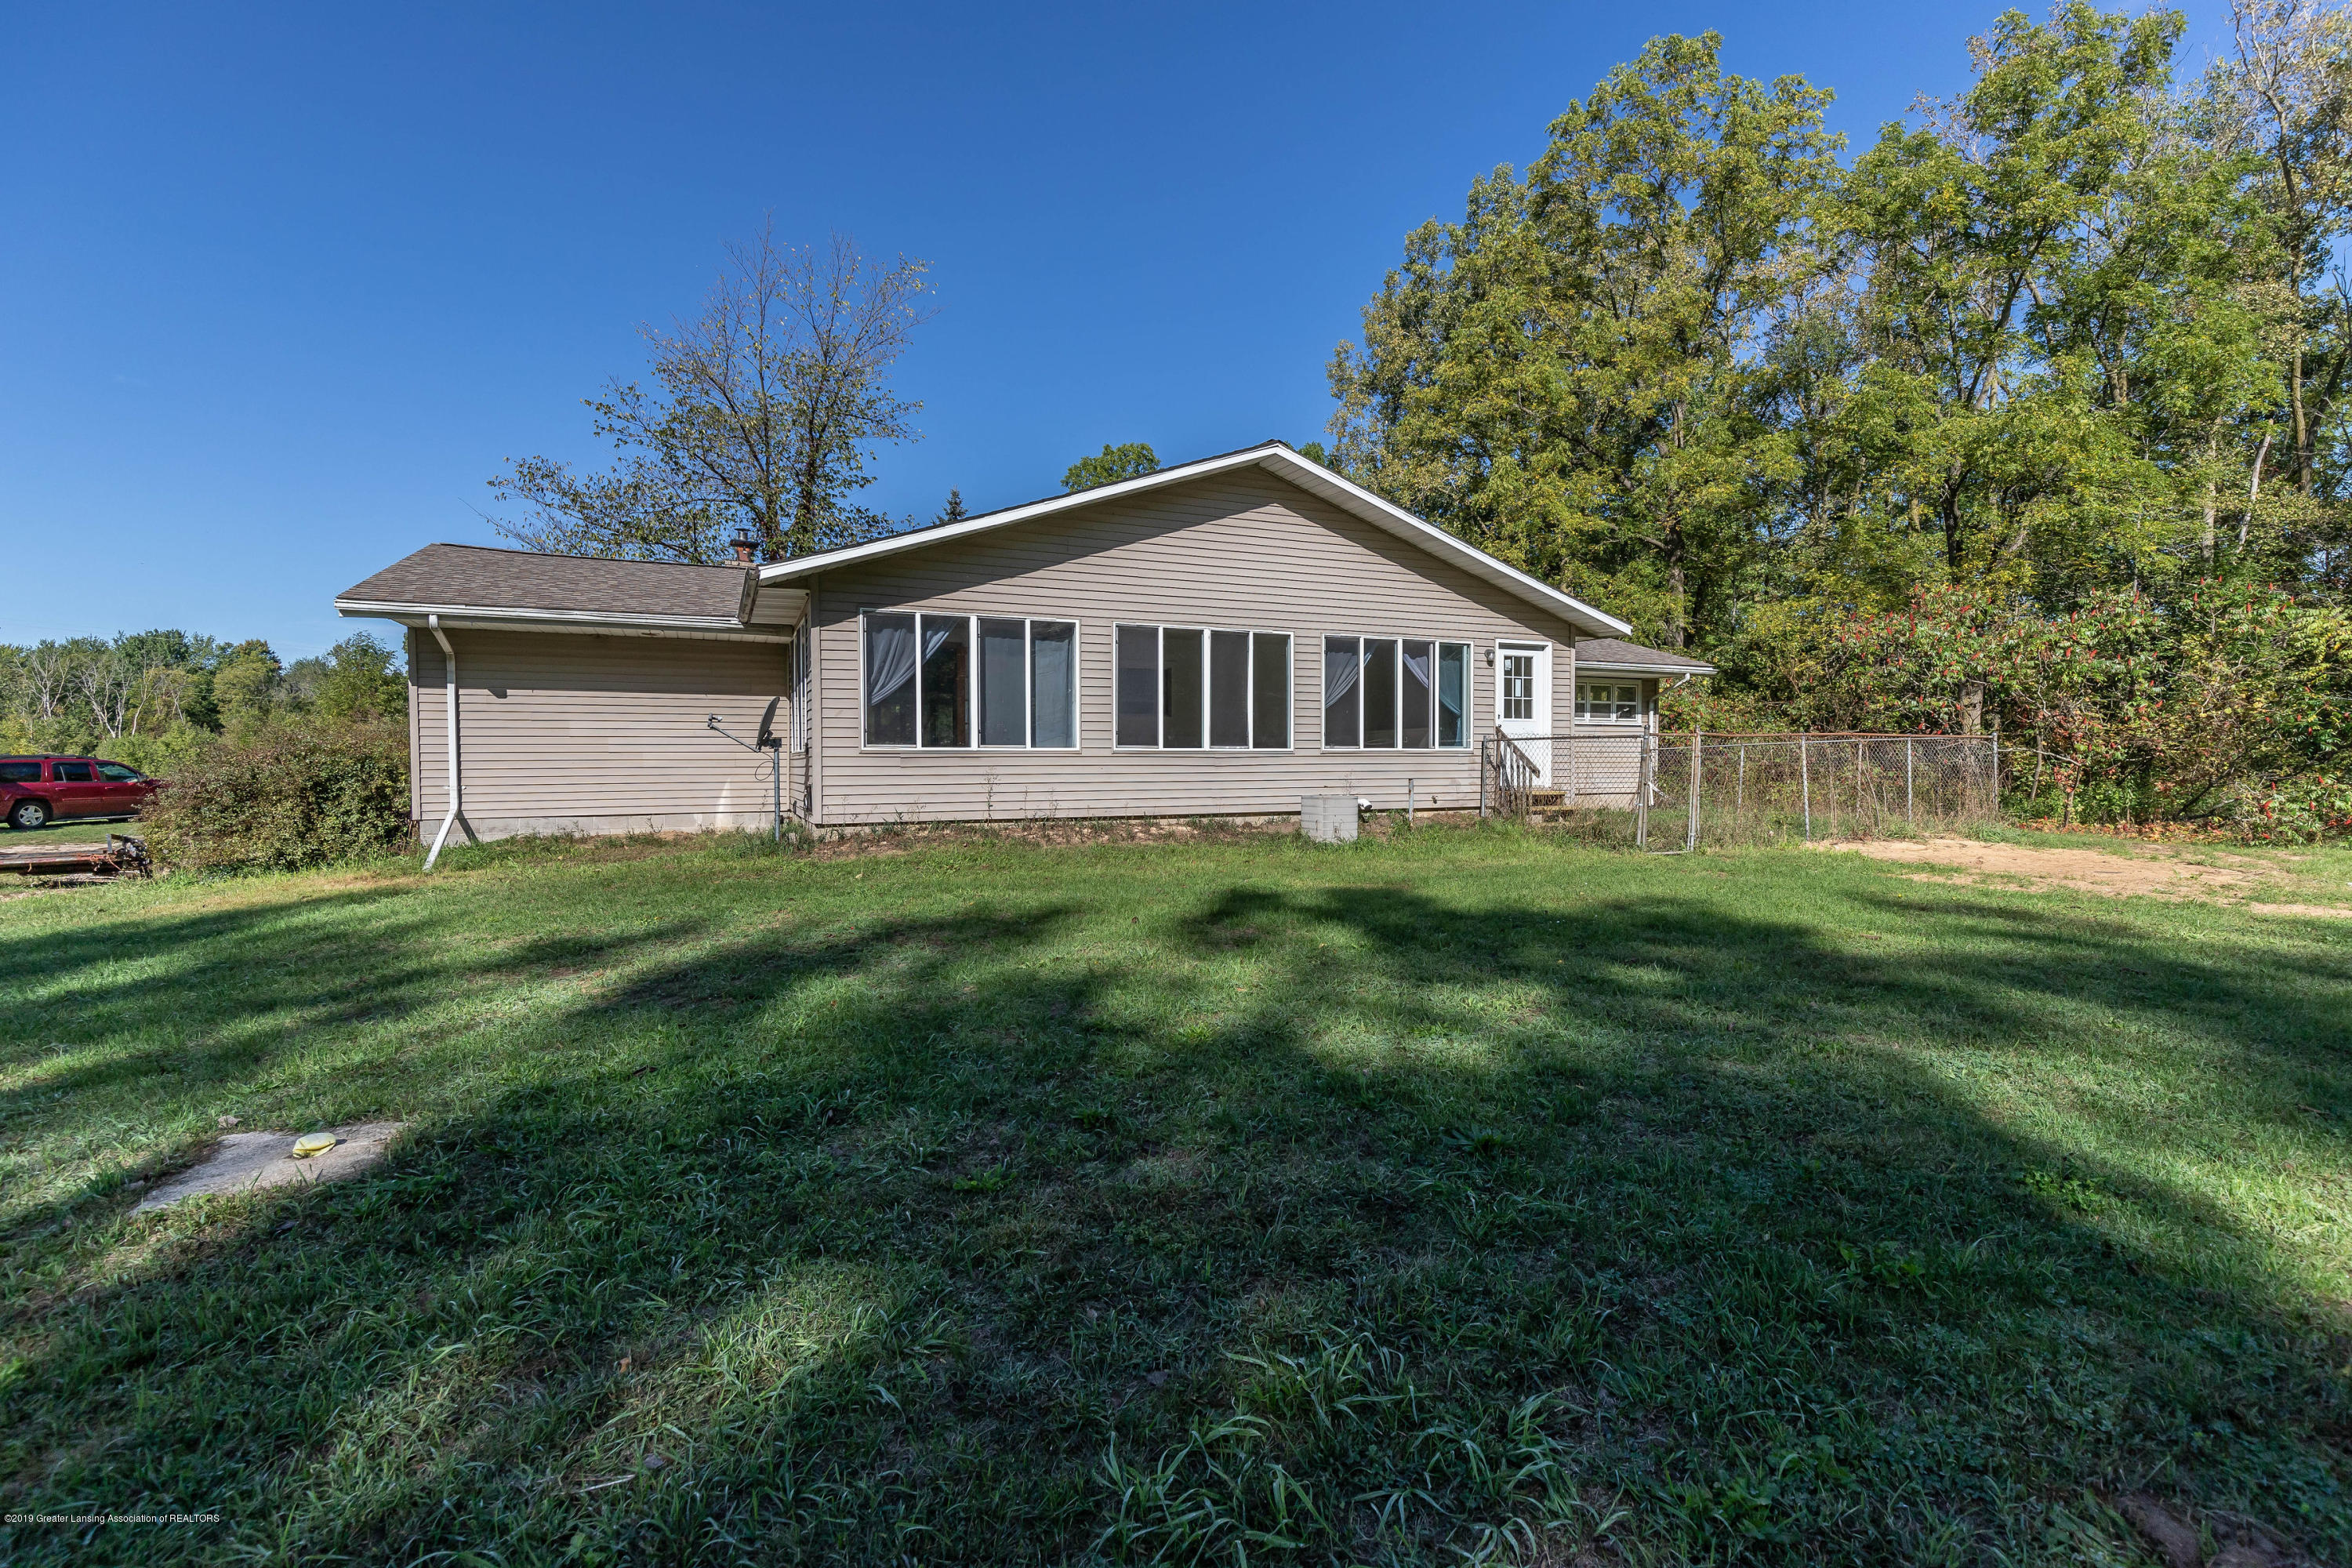 6569 S Stine Rd - bakerback2(1of1) - 37